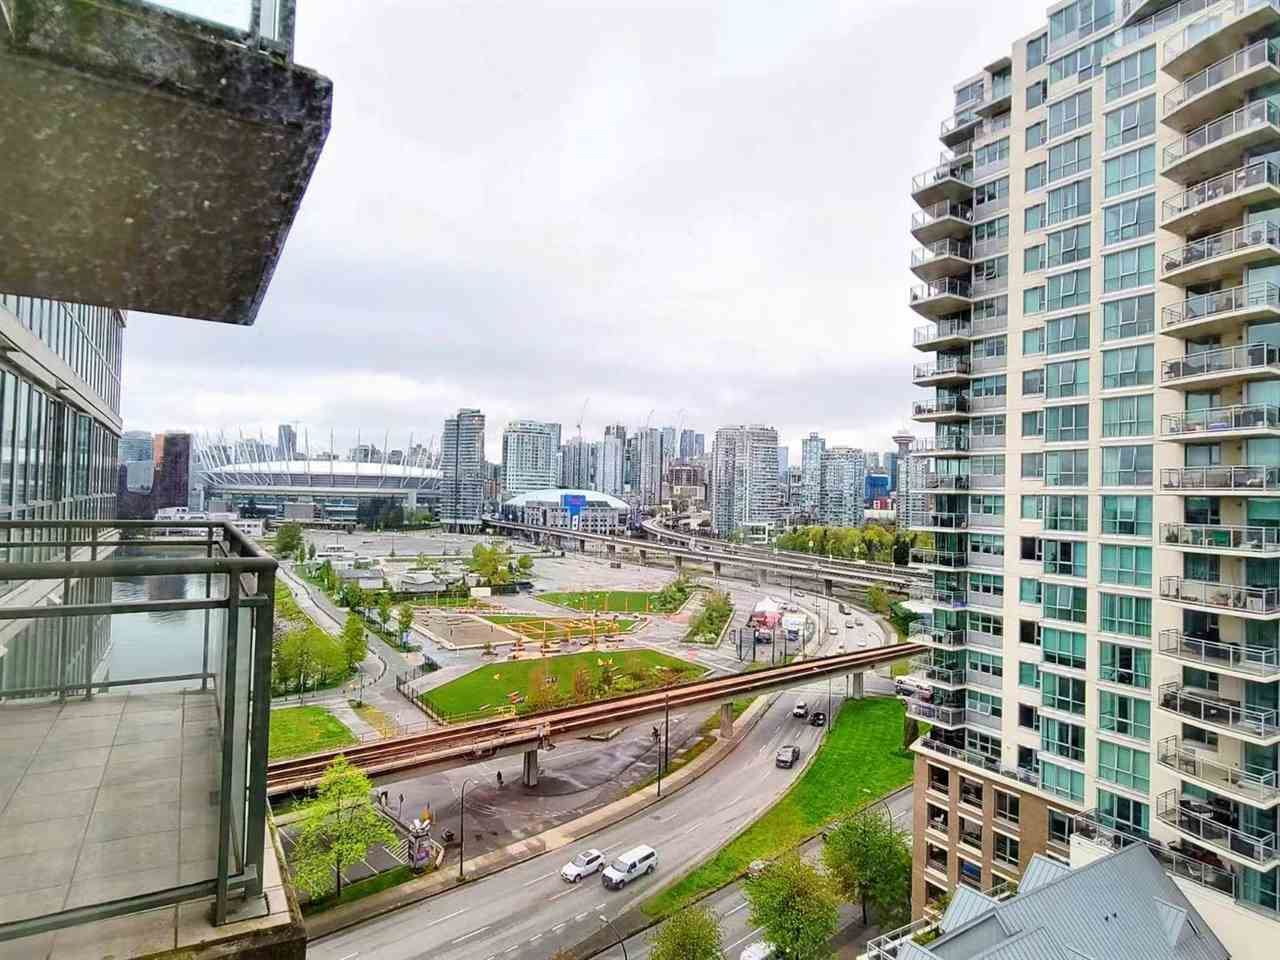 Photo for 1204 1088 QUEBEC STREET, Vancouver, BC V6A 4H2 (MLS # R2572623)